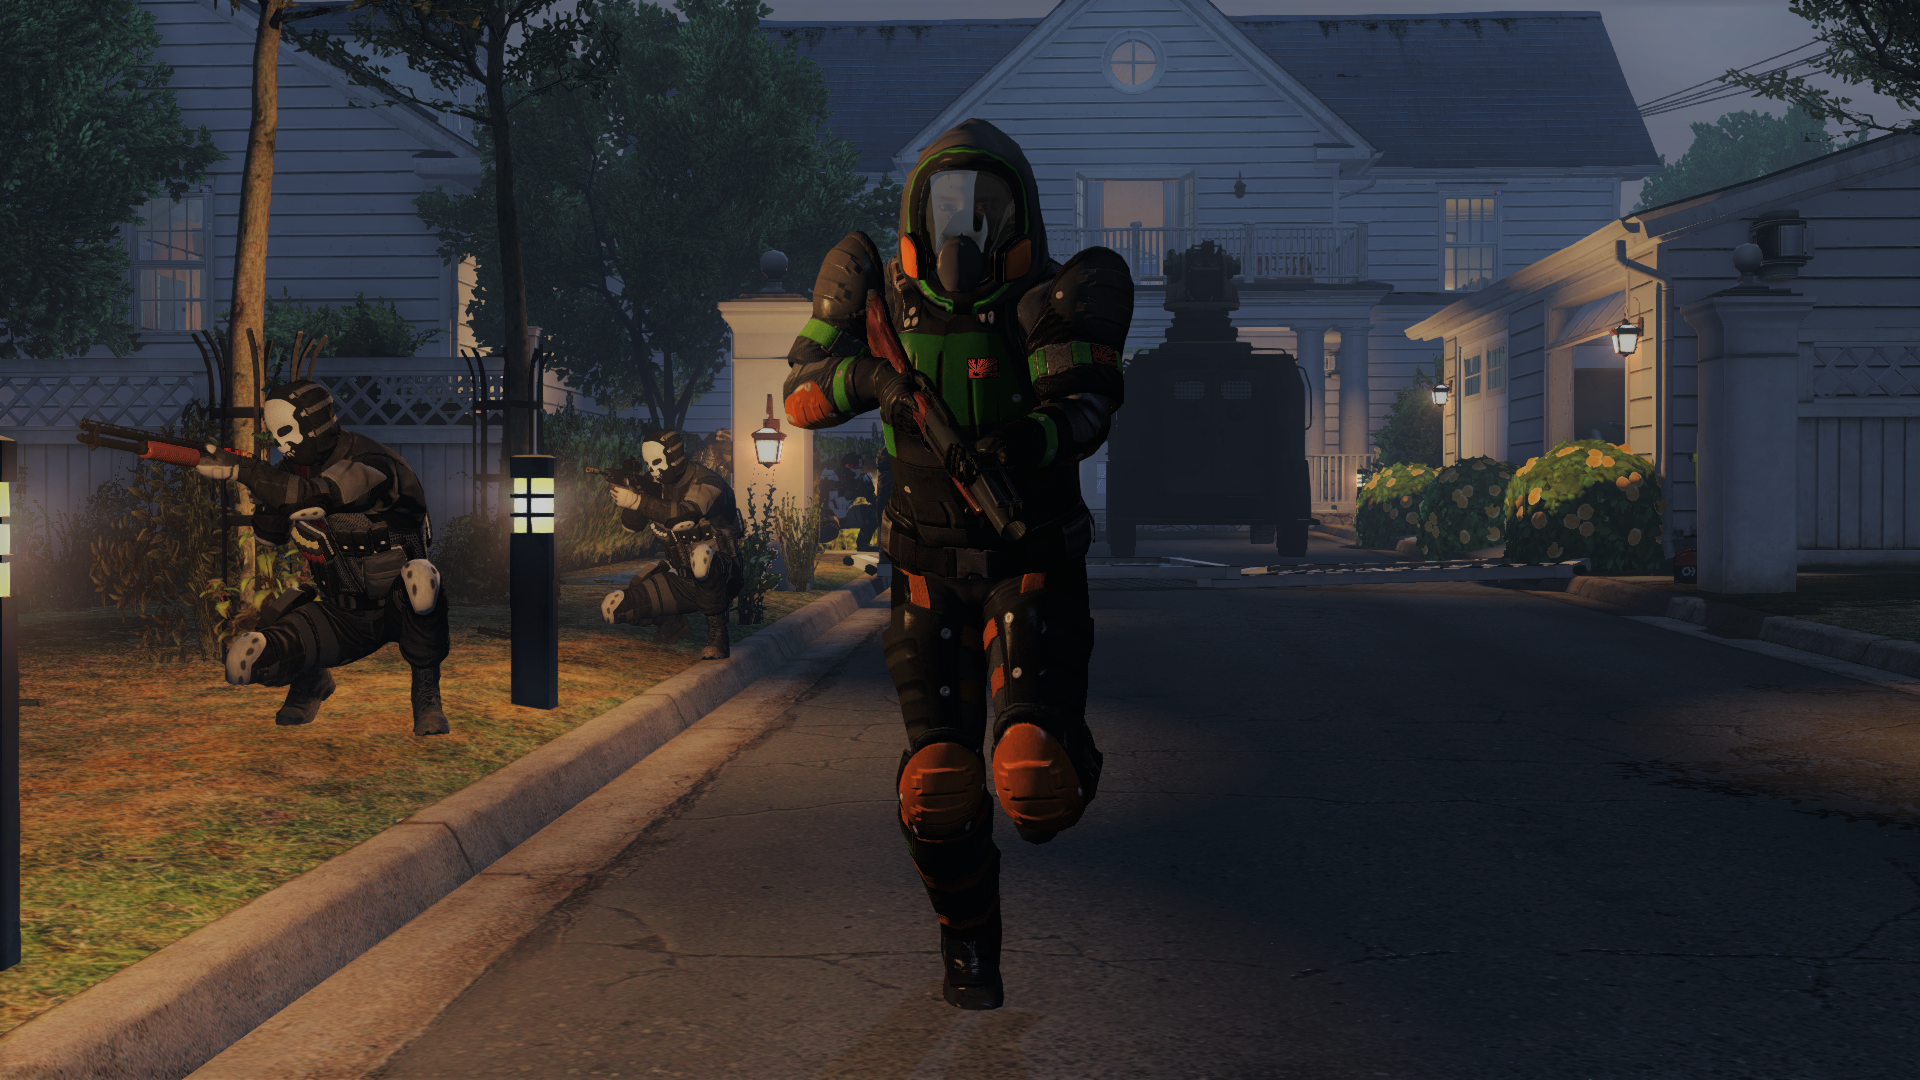 PAYDAY 2: Crackdown Mod: Big Fix Update (5/16/19) - Mods